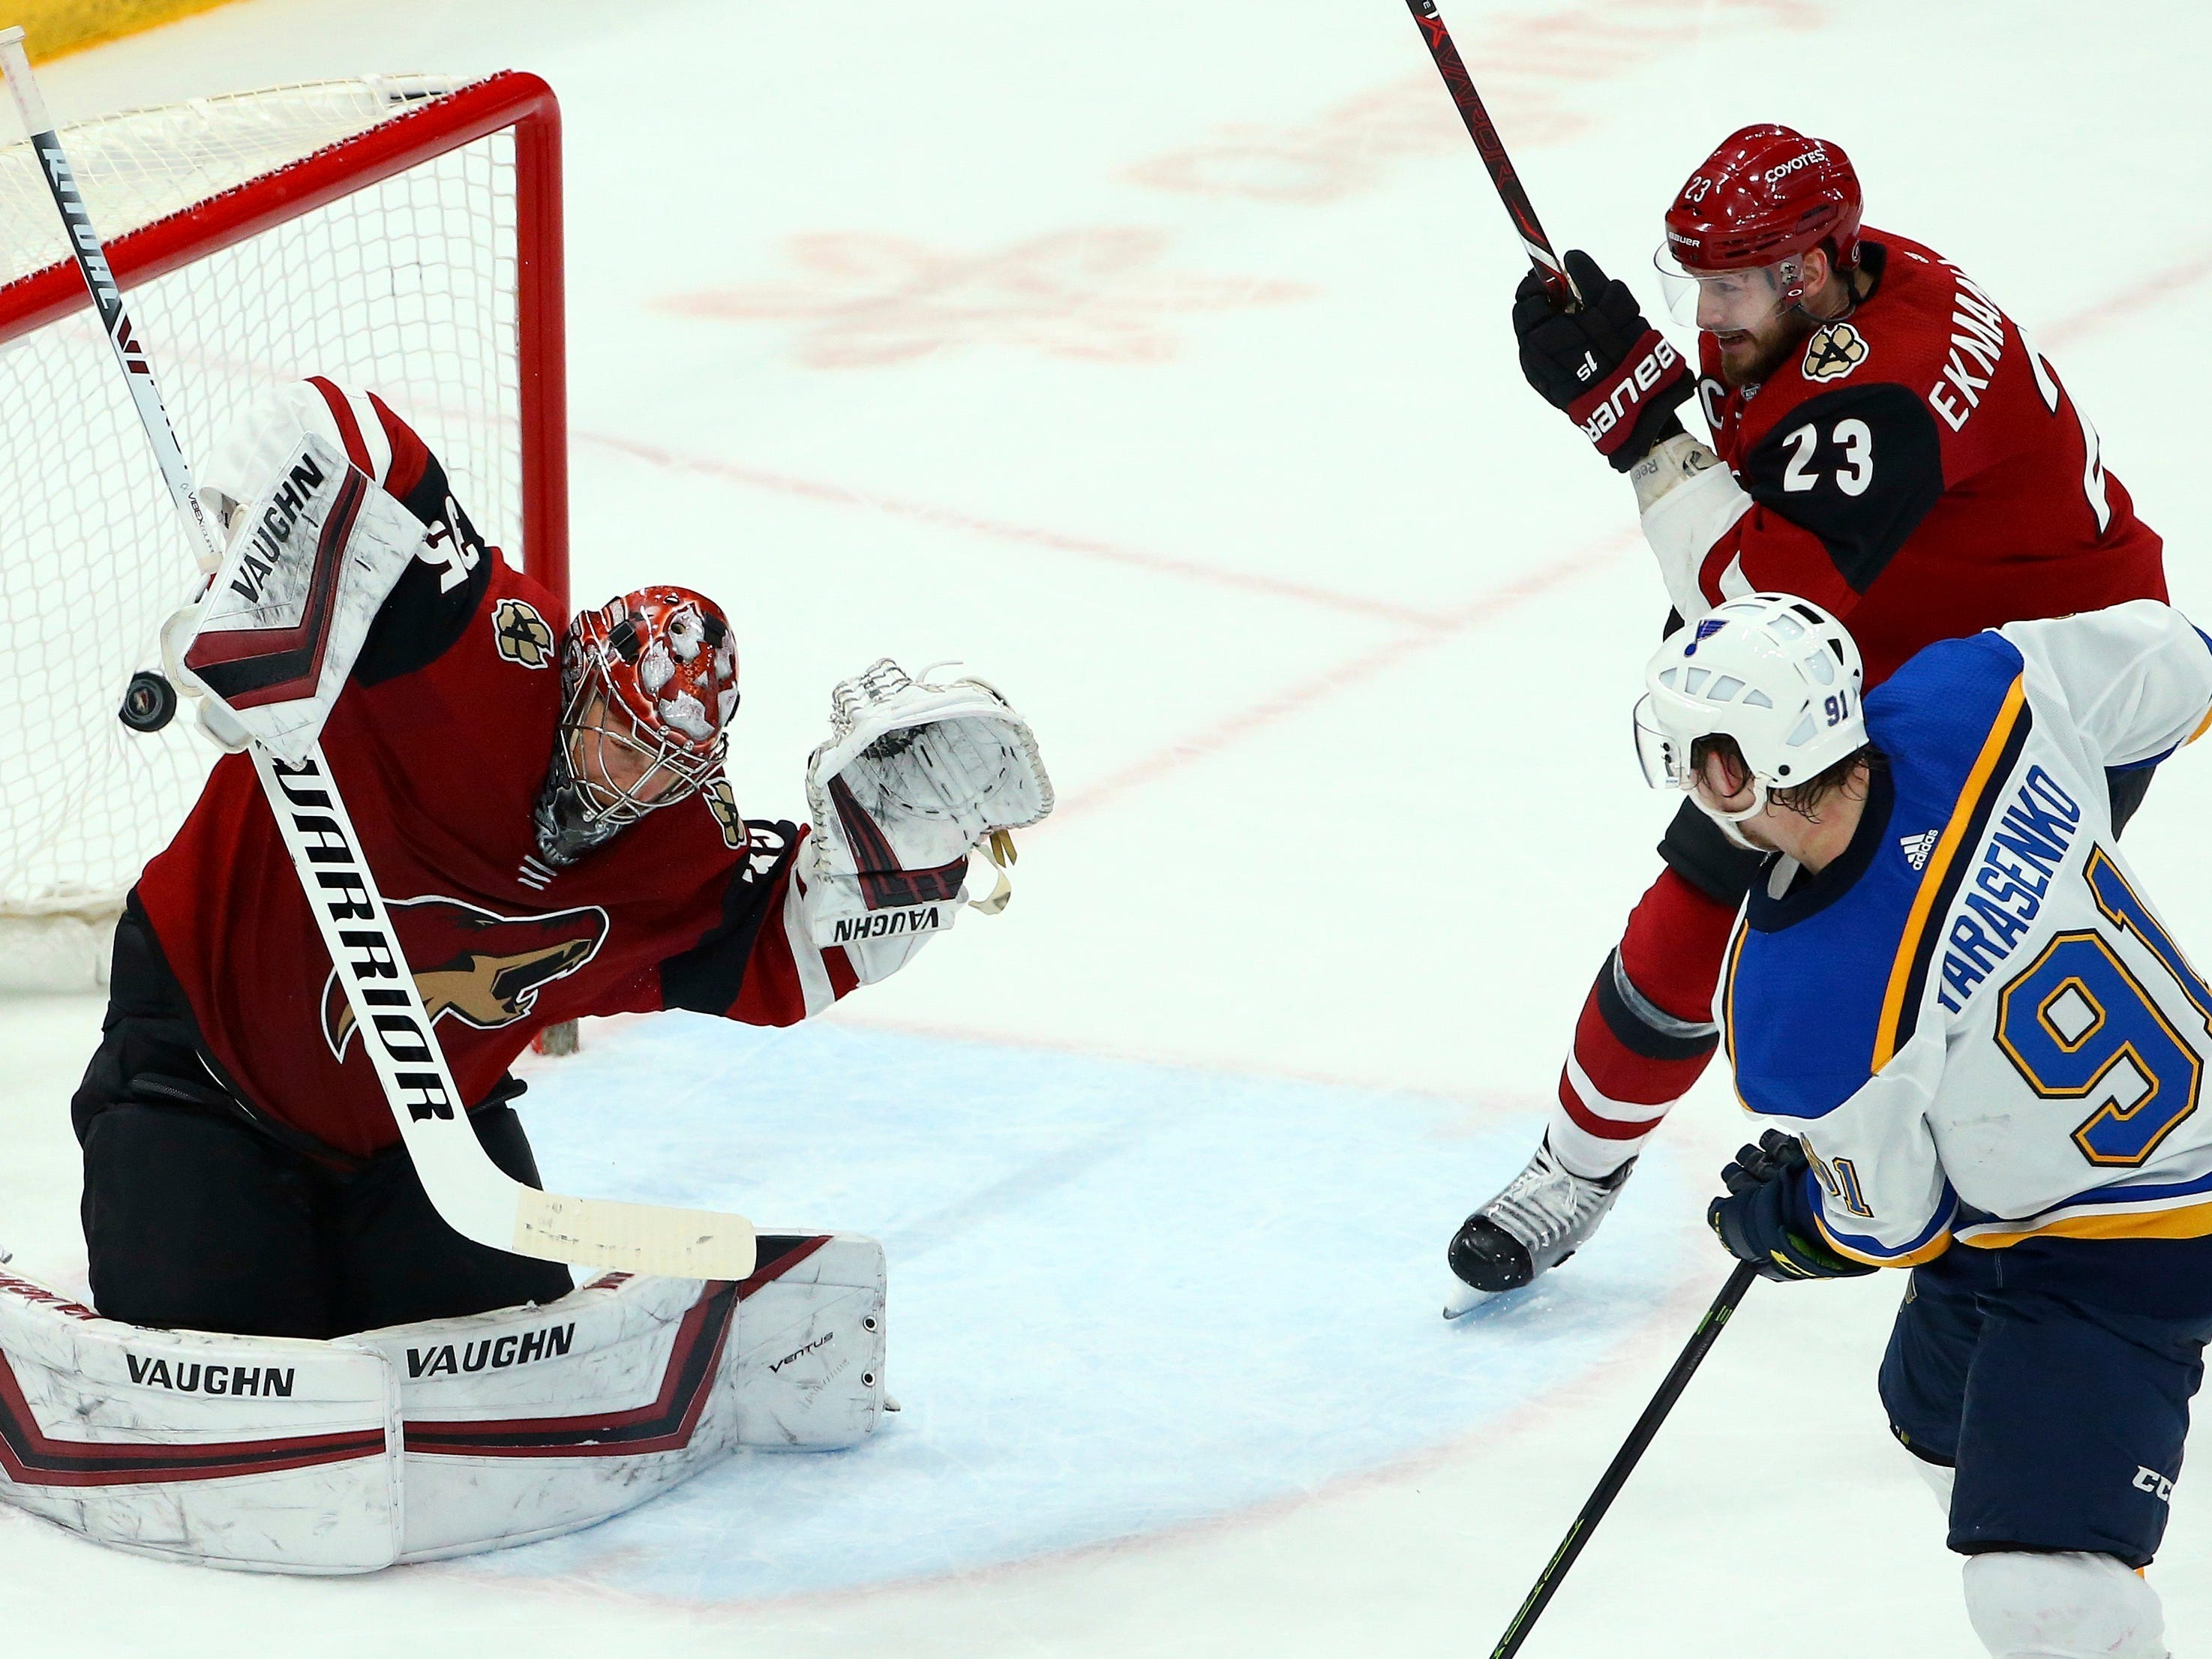 St. Louis Blues right wing Vladimir Tarasenko (91) sends the puck past Arizona Coyotes goaltender Darcy Kuemper, left, for a goal as Coyotes defenseman Oliver Ekman-Larsson (23) watches during the first period of an NHL hockey game Thursday, Feb. 14, 2019, in Glendale, Ariz.